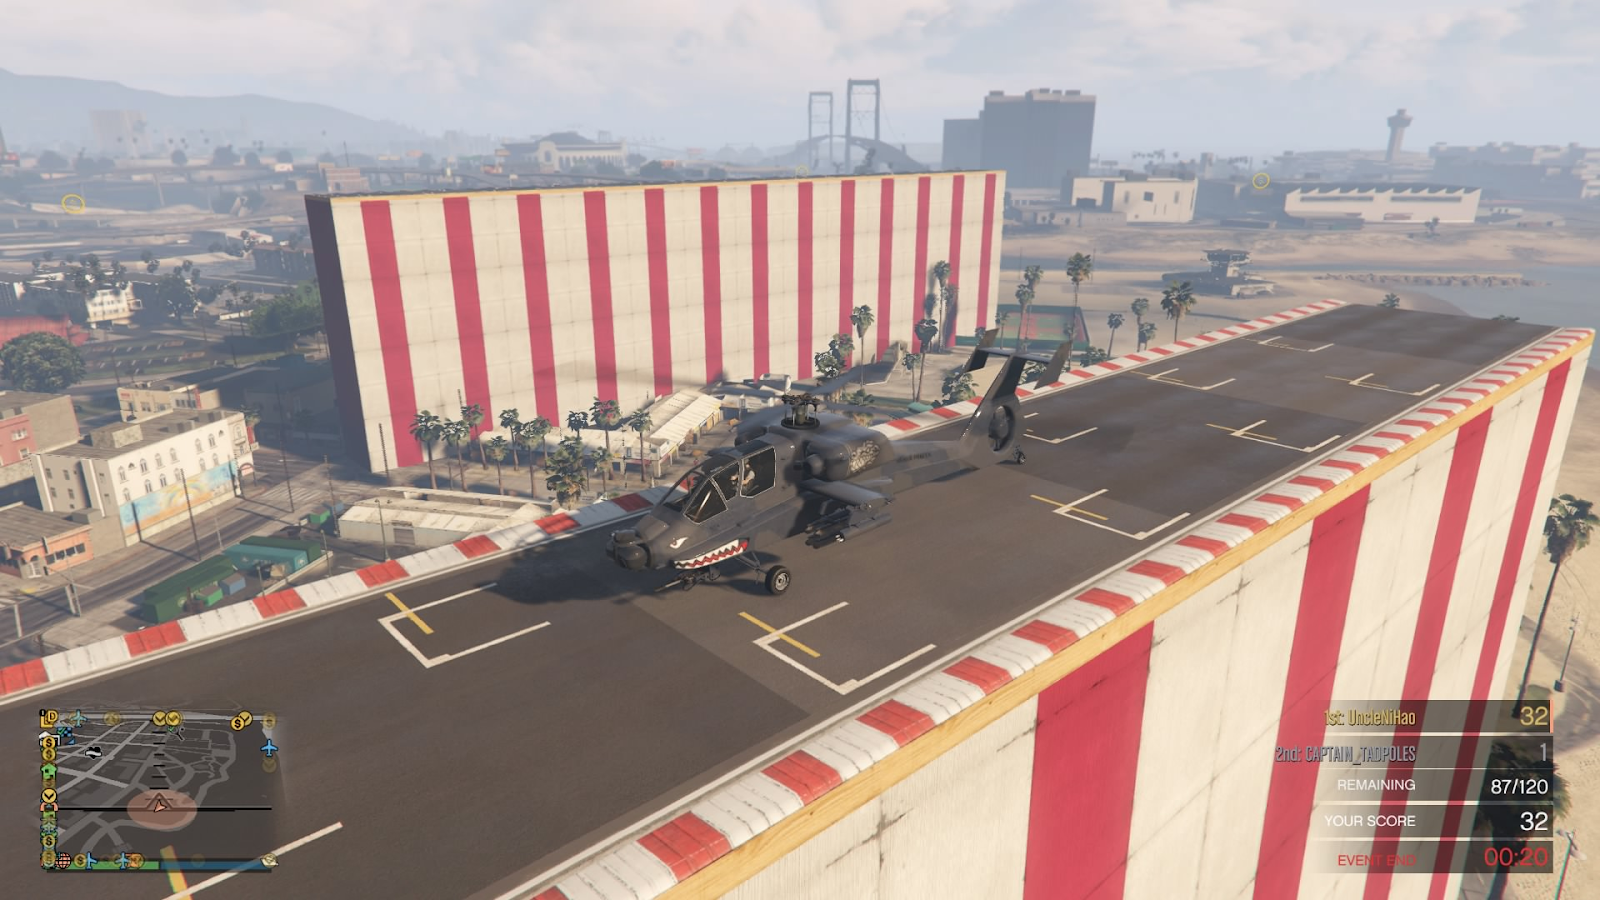 Latest GTA Online Money Glitch Has Giant Stunt Tracks Sprouting From The Ground